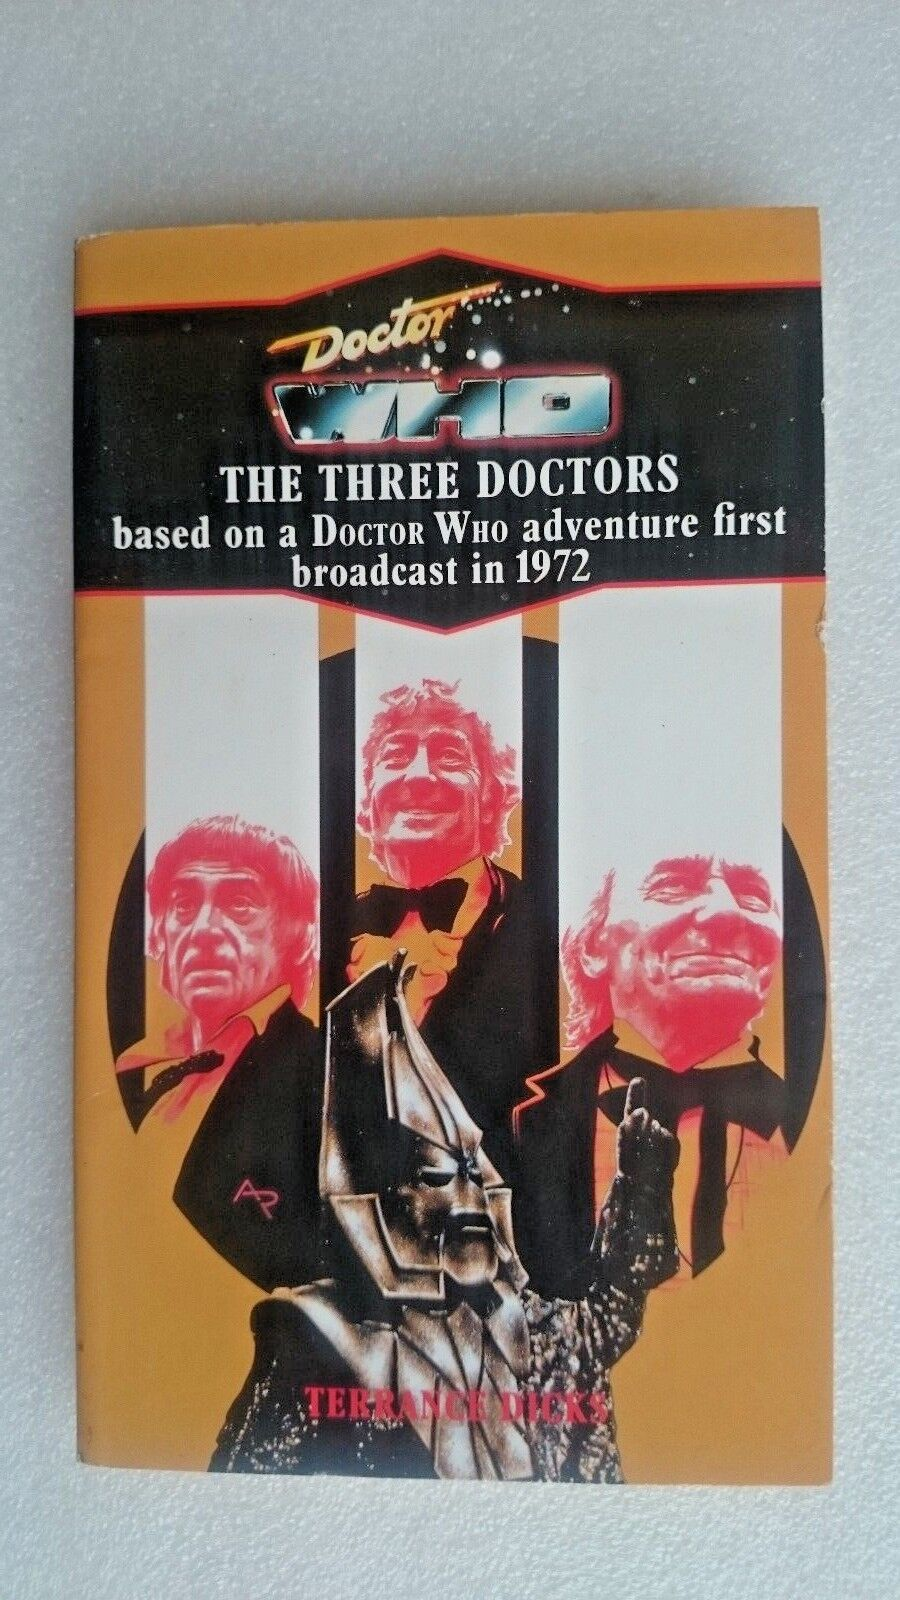 Doctor Who and the Three Doctors by Terrance Dicks (Paperback, 1991)